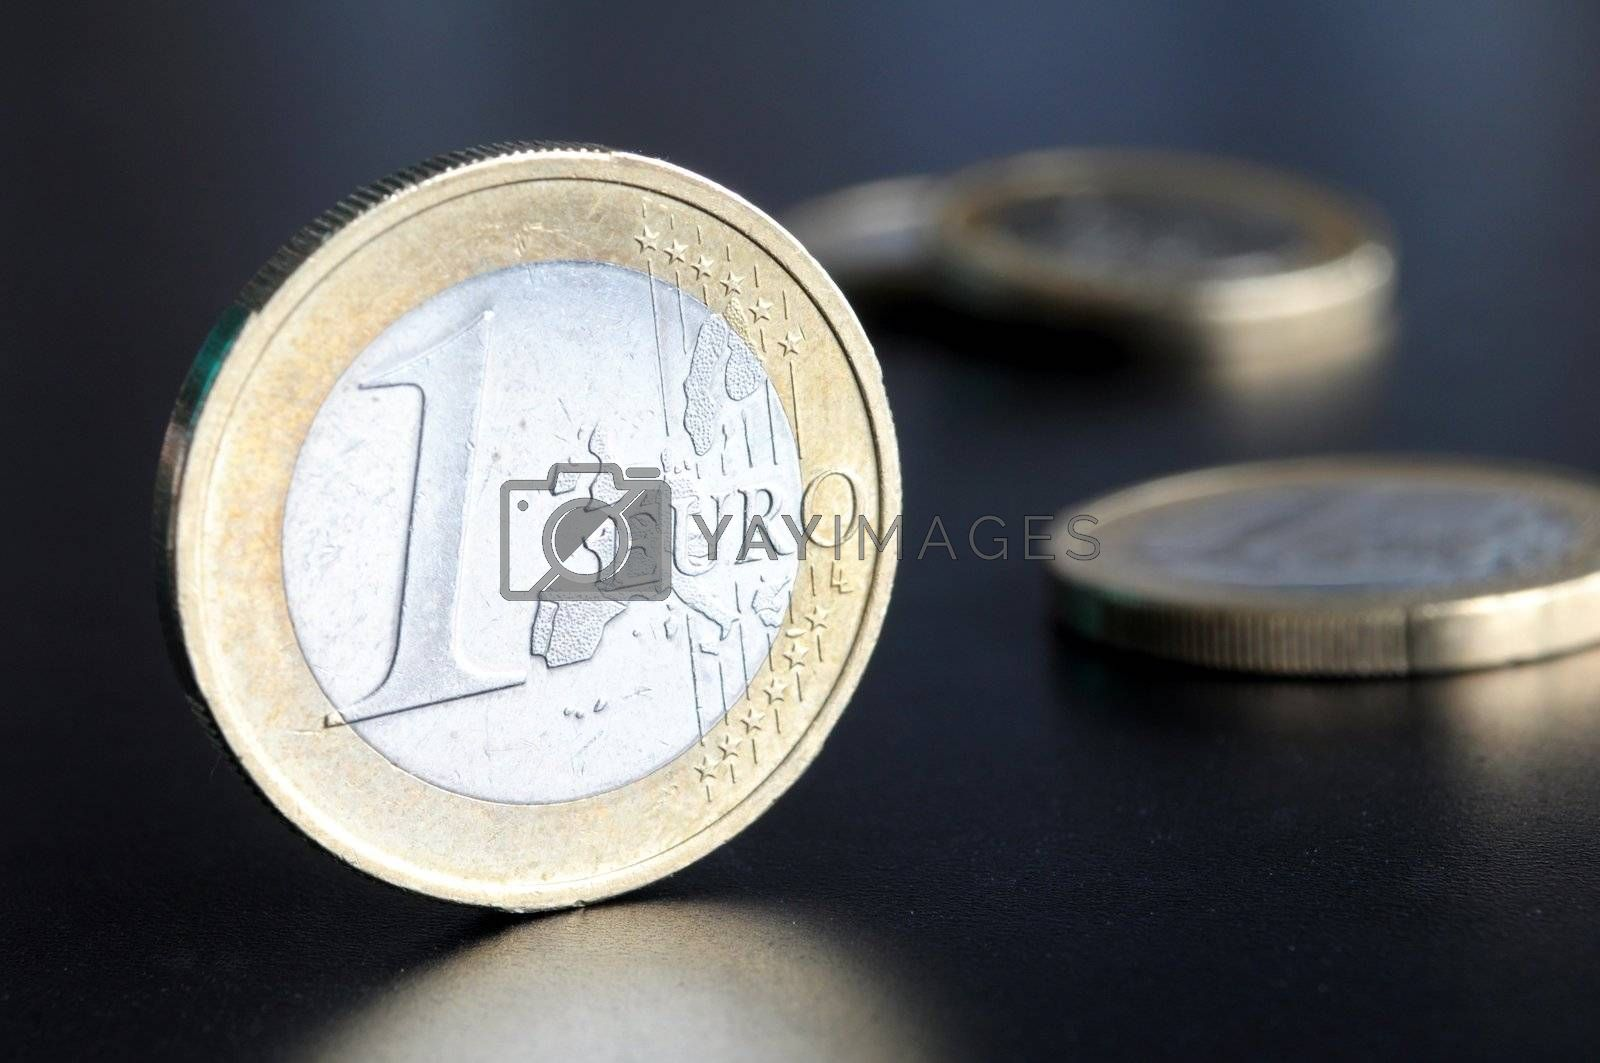 euro coin or money showing financial investment or savings